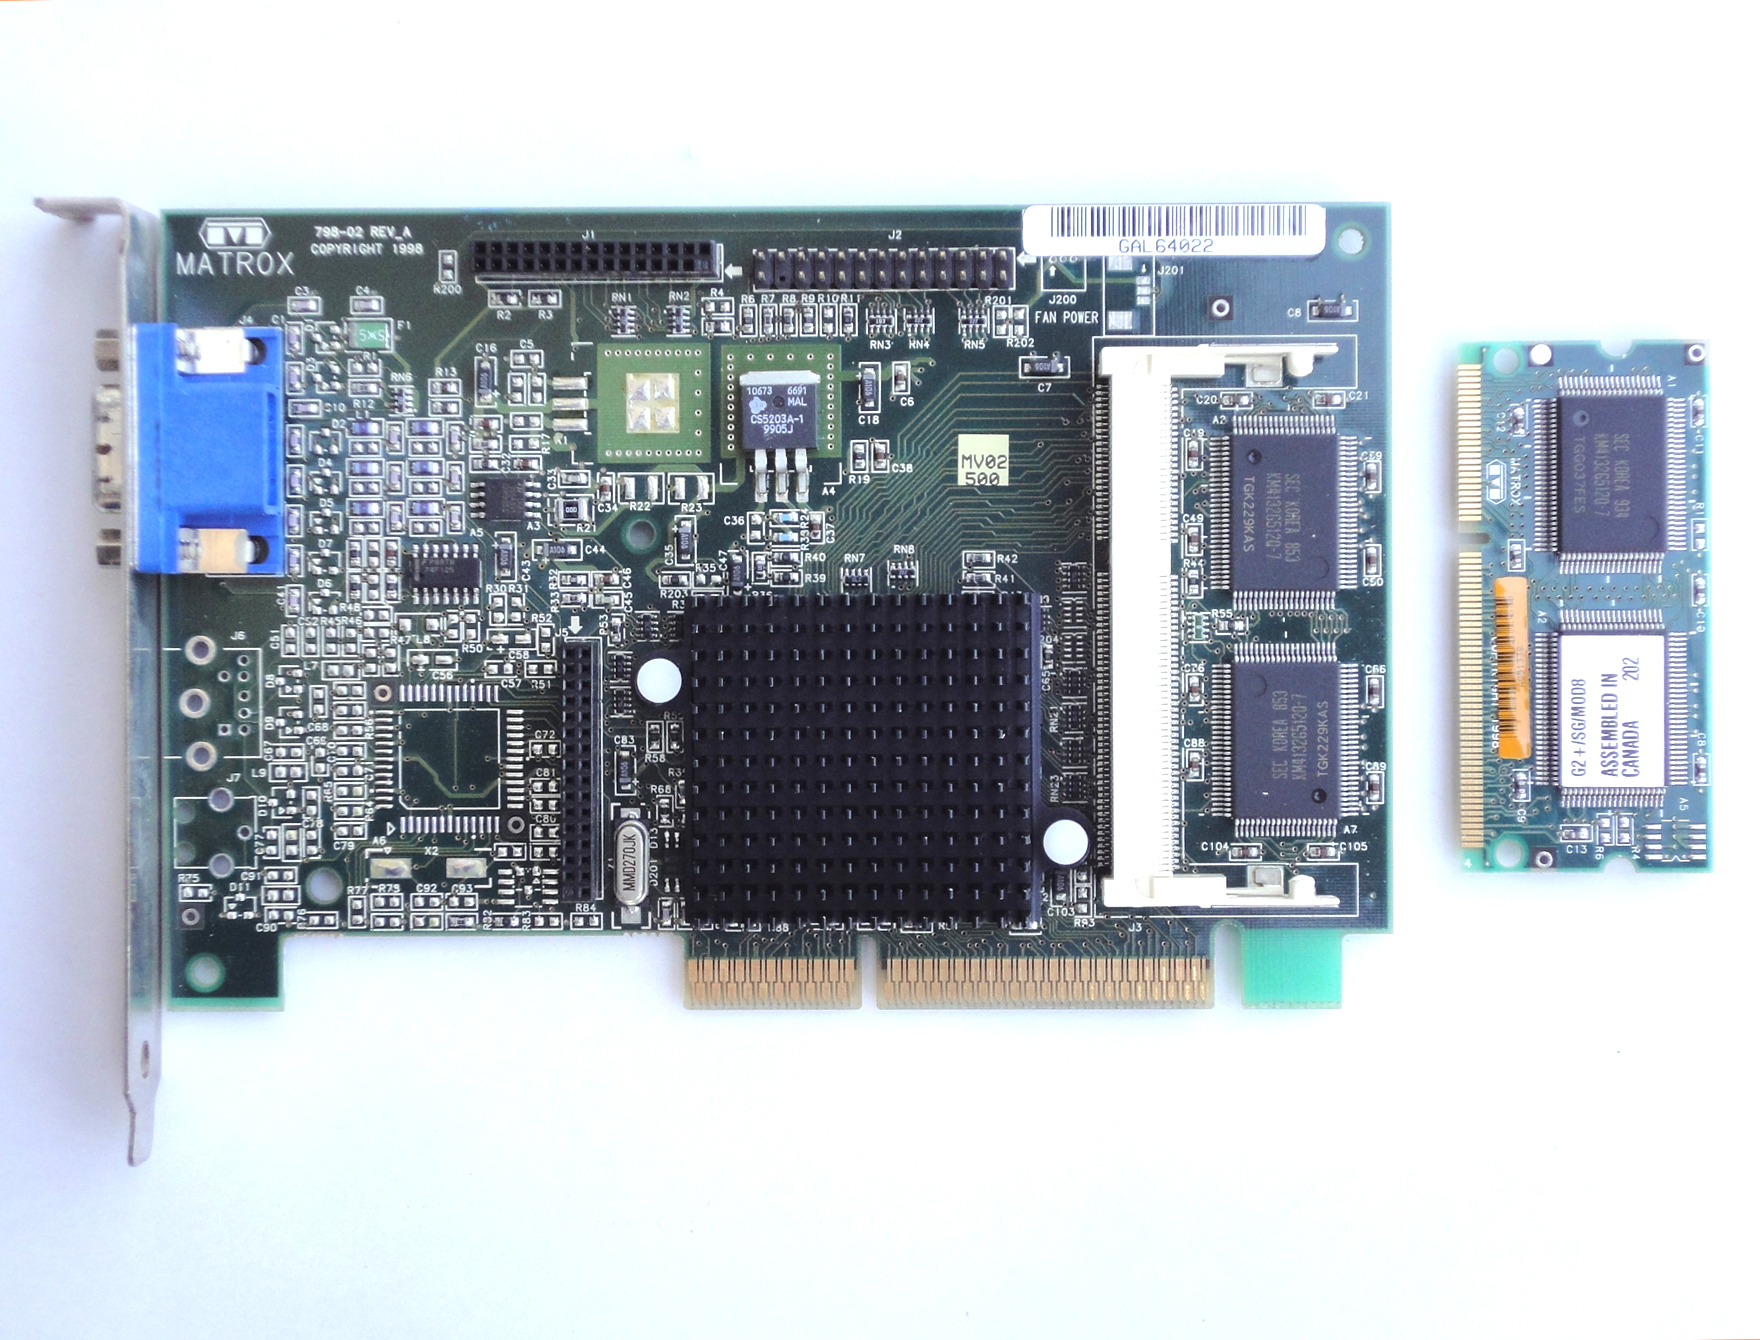 MATROX G200EW WINDOWS 7 DRIVER